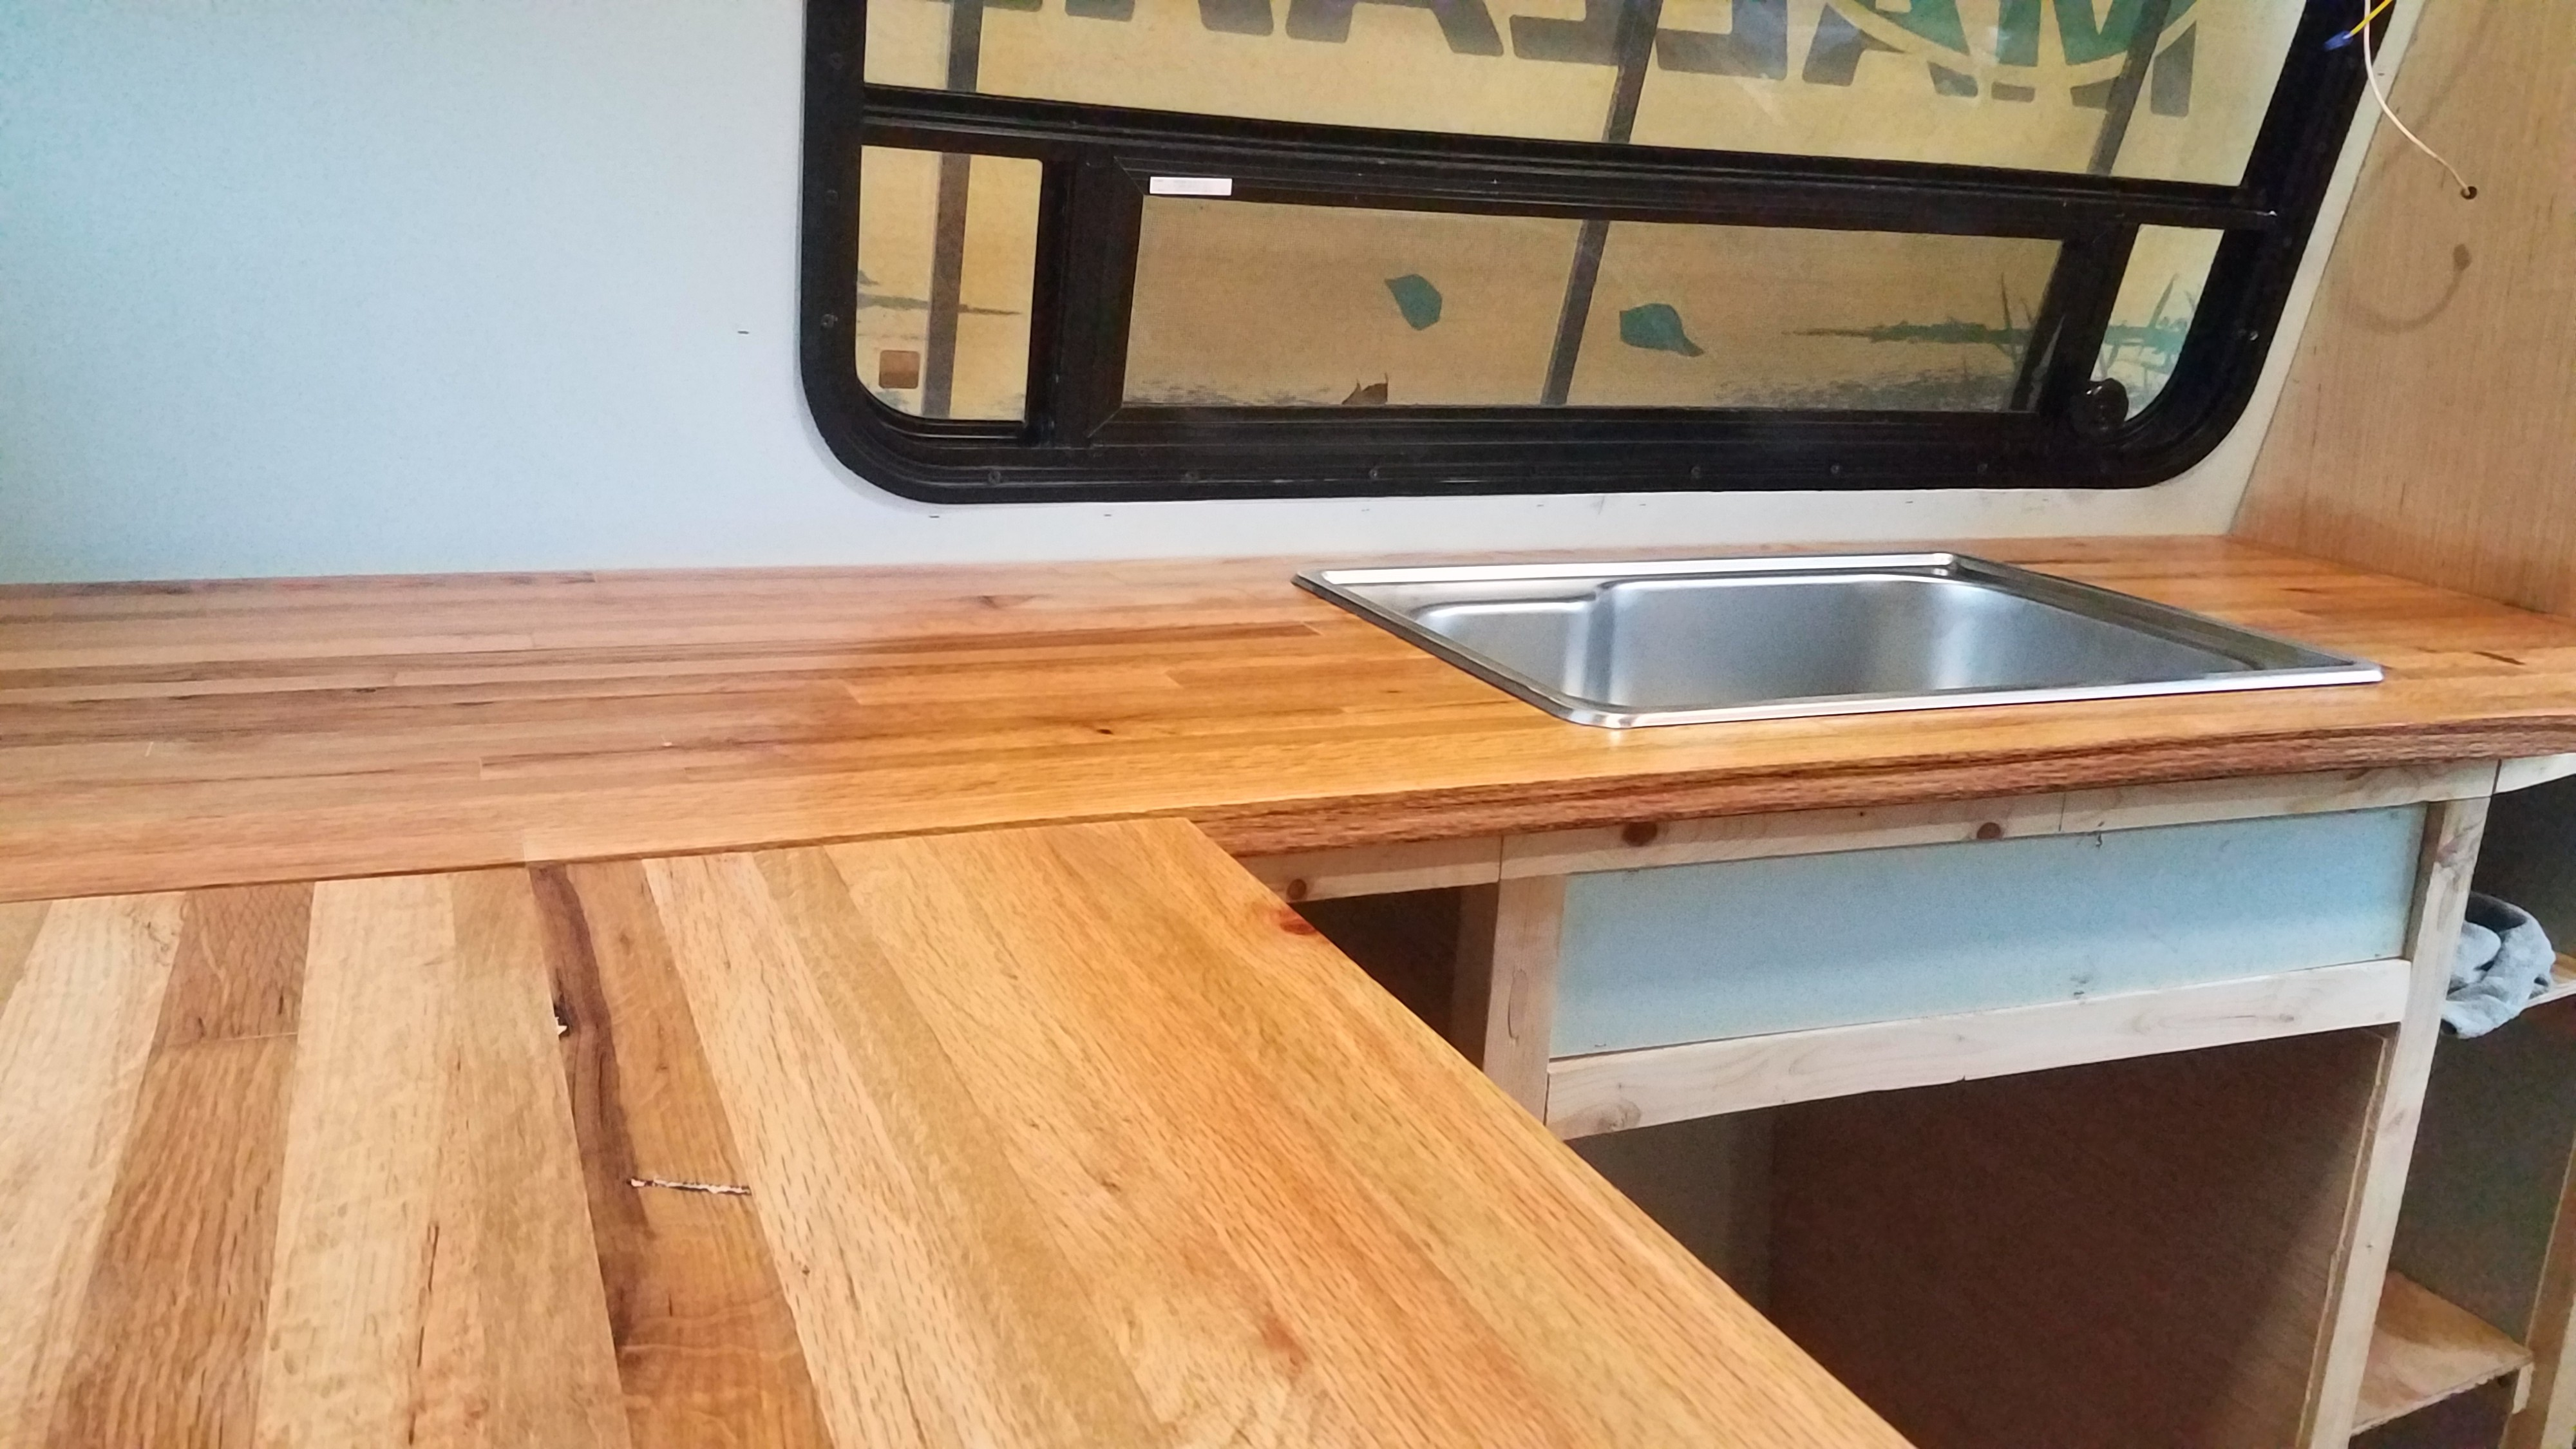 Diy Reclaimed Butcher Block Countertop By Samantha Goodwin Medium